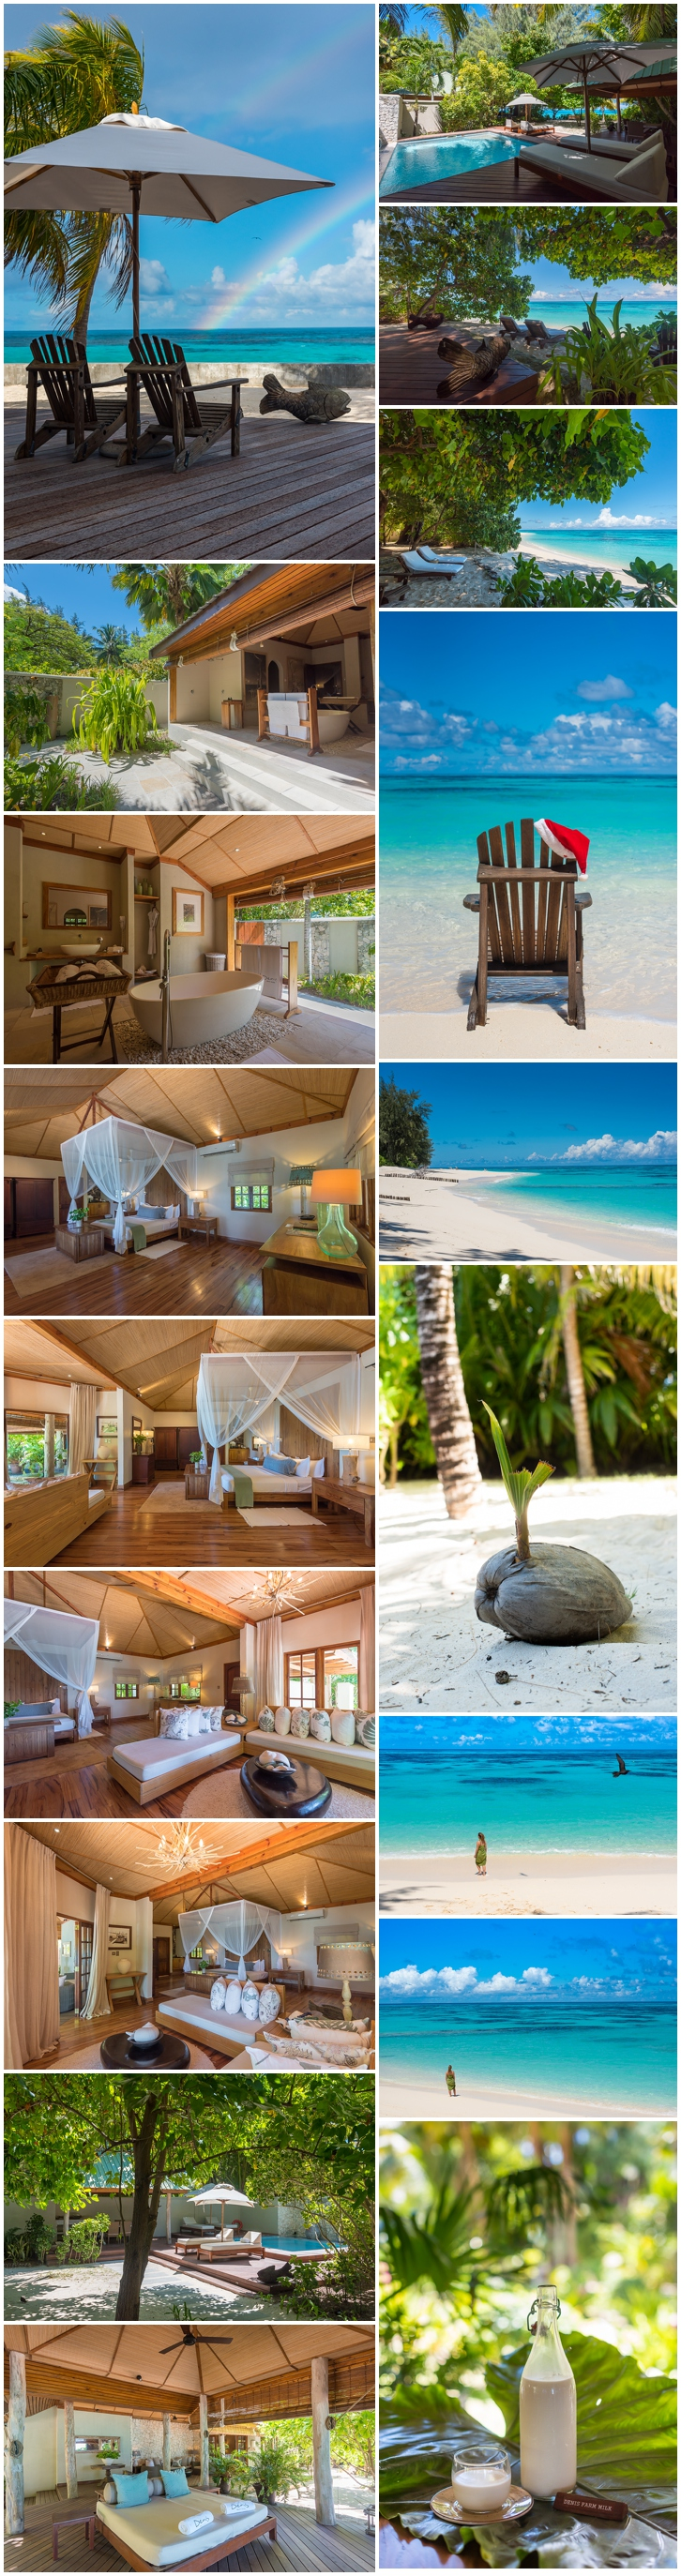 Hotel photographer seychelles maldives islands